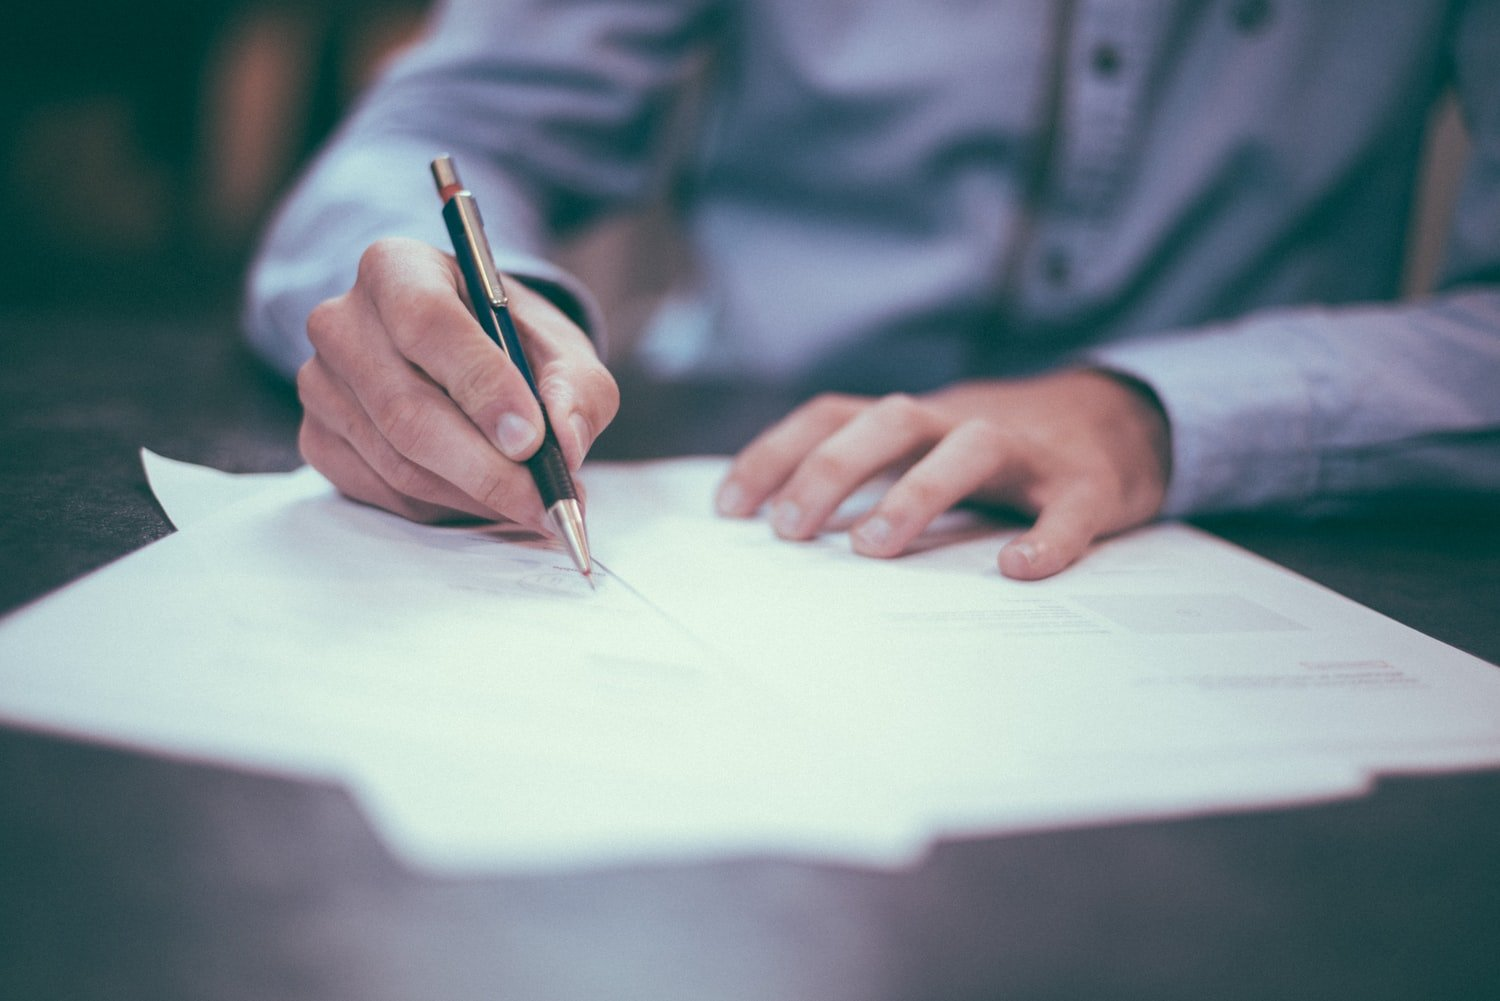 Signing the divorce petition papers in a California divorce